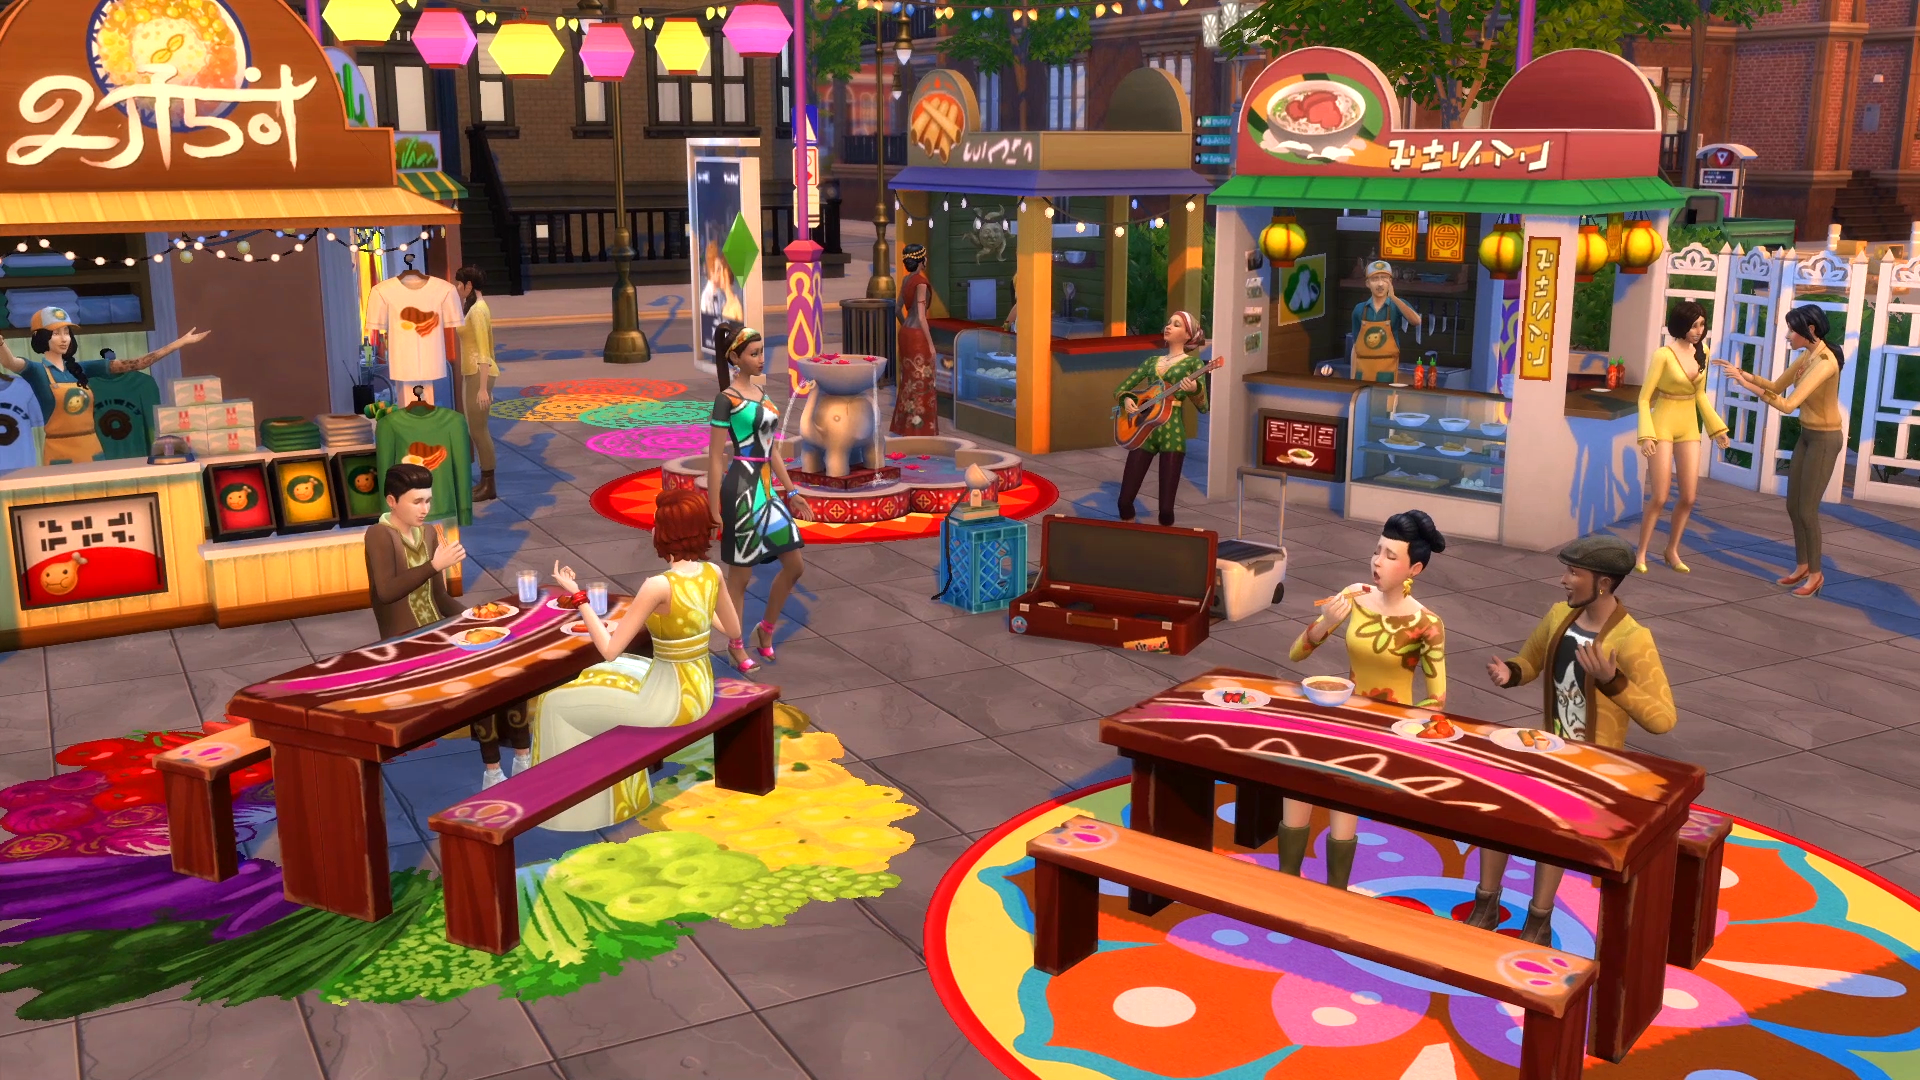 PC] The Sims 4 City Living INTERNAL-RELOADED [Simulation|ISO